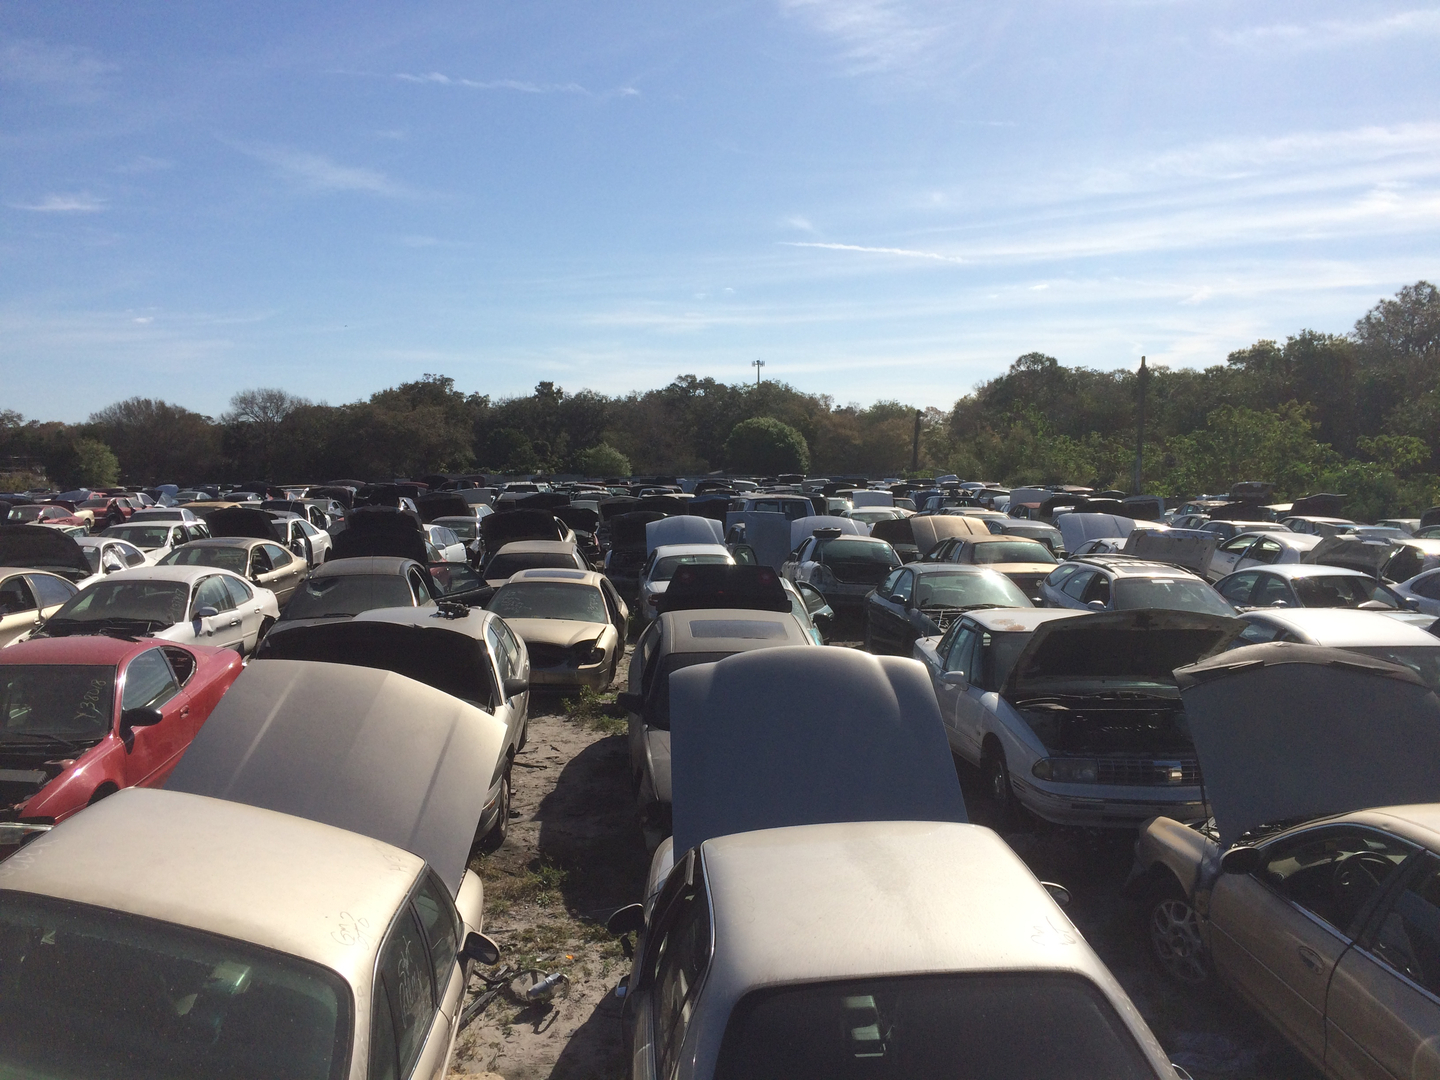 Selling used auto parts, buying junk cars - A&A Auto Recycling